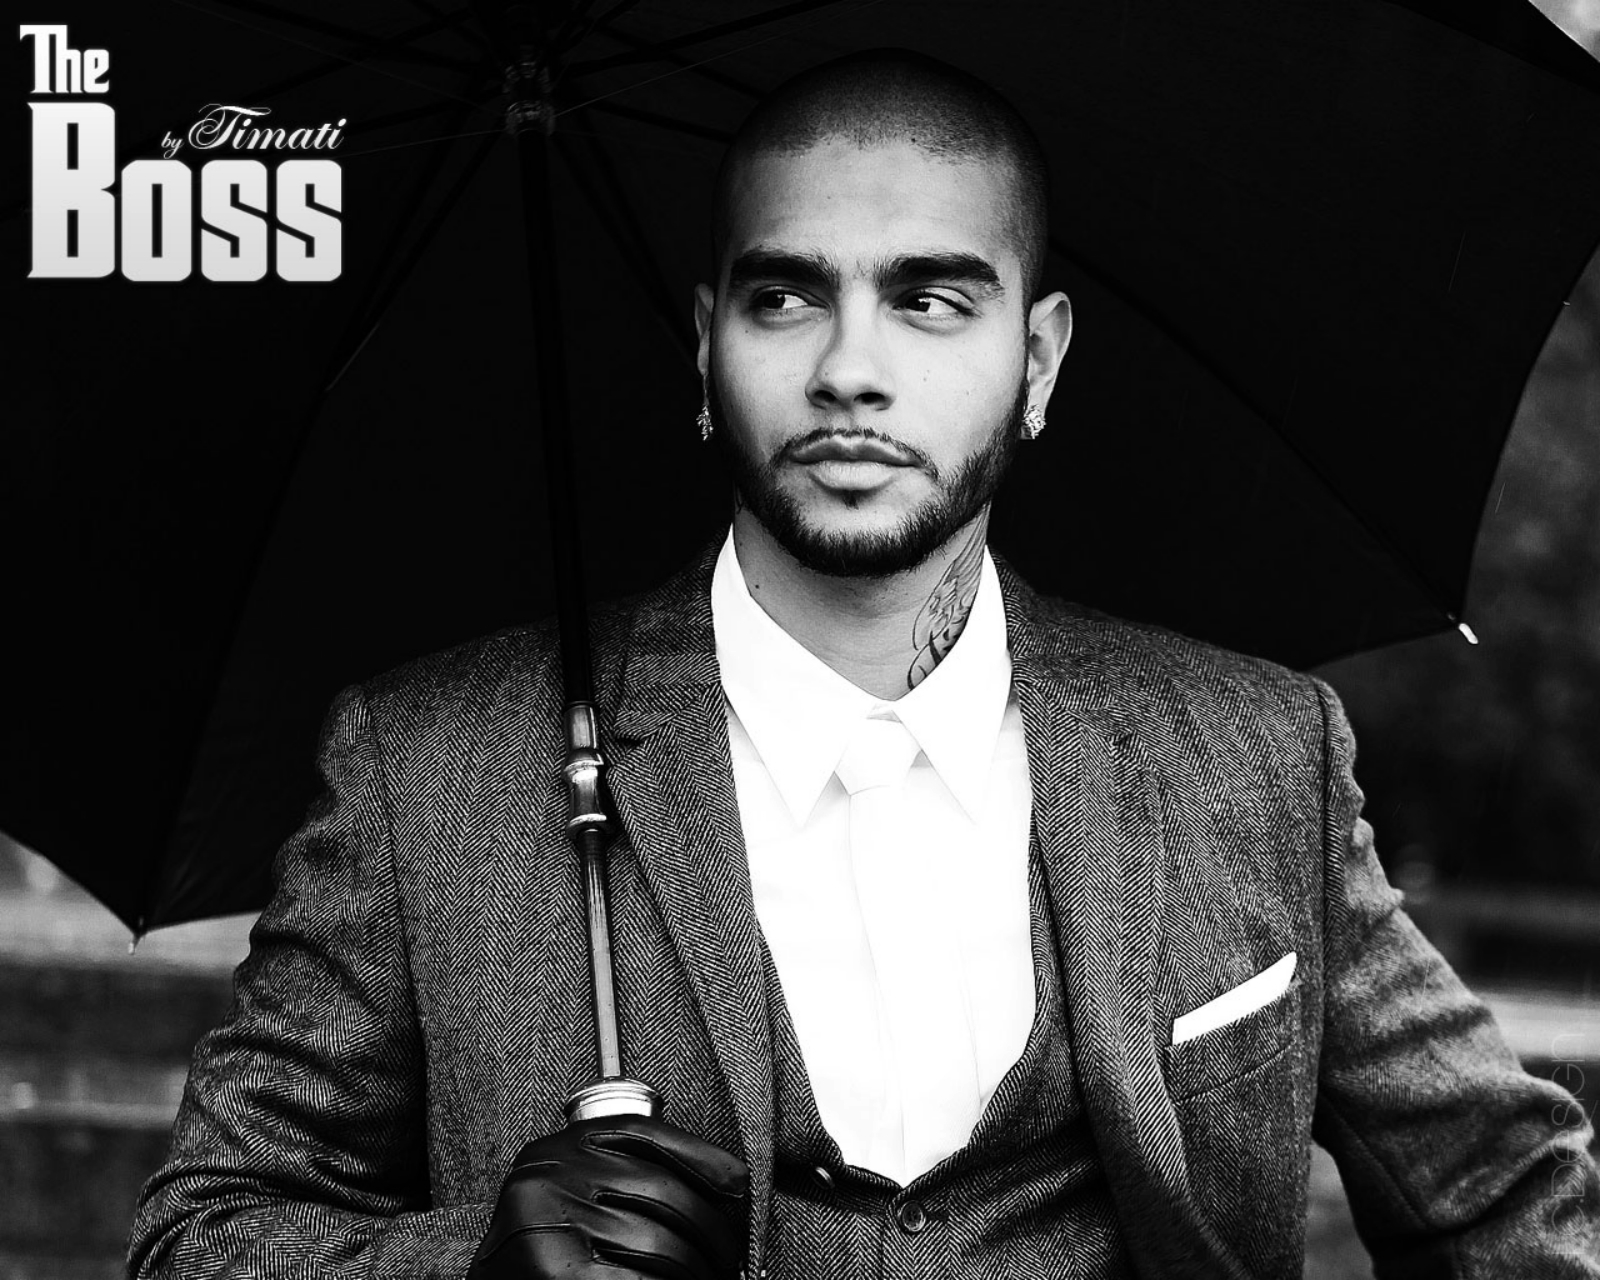 http://4.bp.blogspot.com/-8dAYH85pW2s/T-hd3wHSe0I/AAAAAAAACSg/AQEeIIro5NI/s1600/Timati_The_Boss_Cover_Black_White_Photography_HD_Wallpaper-Vvallpaper.Net.jpg